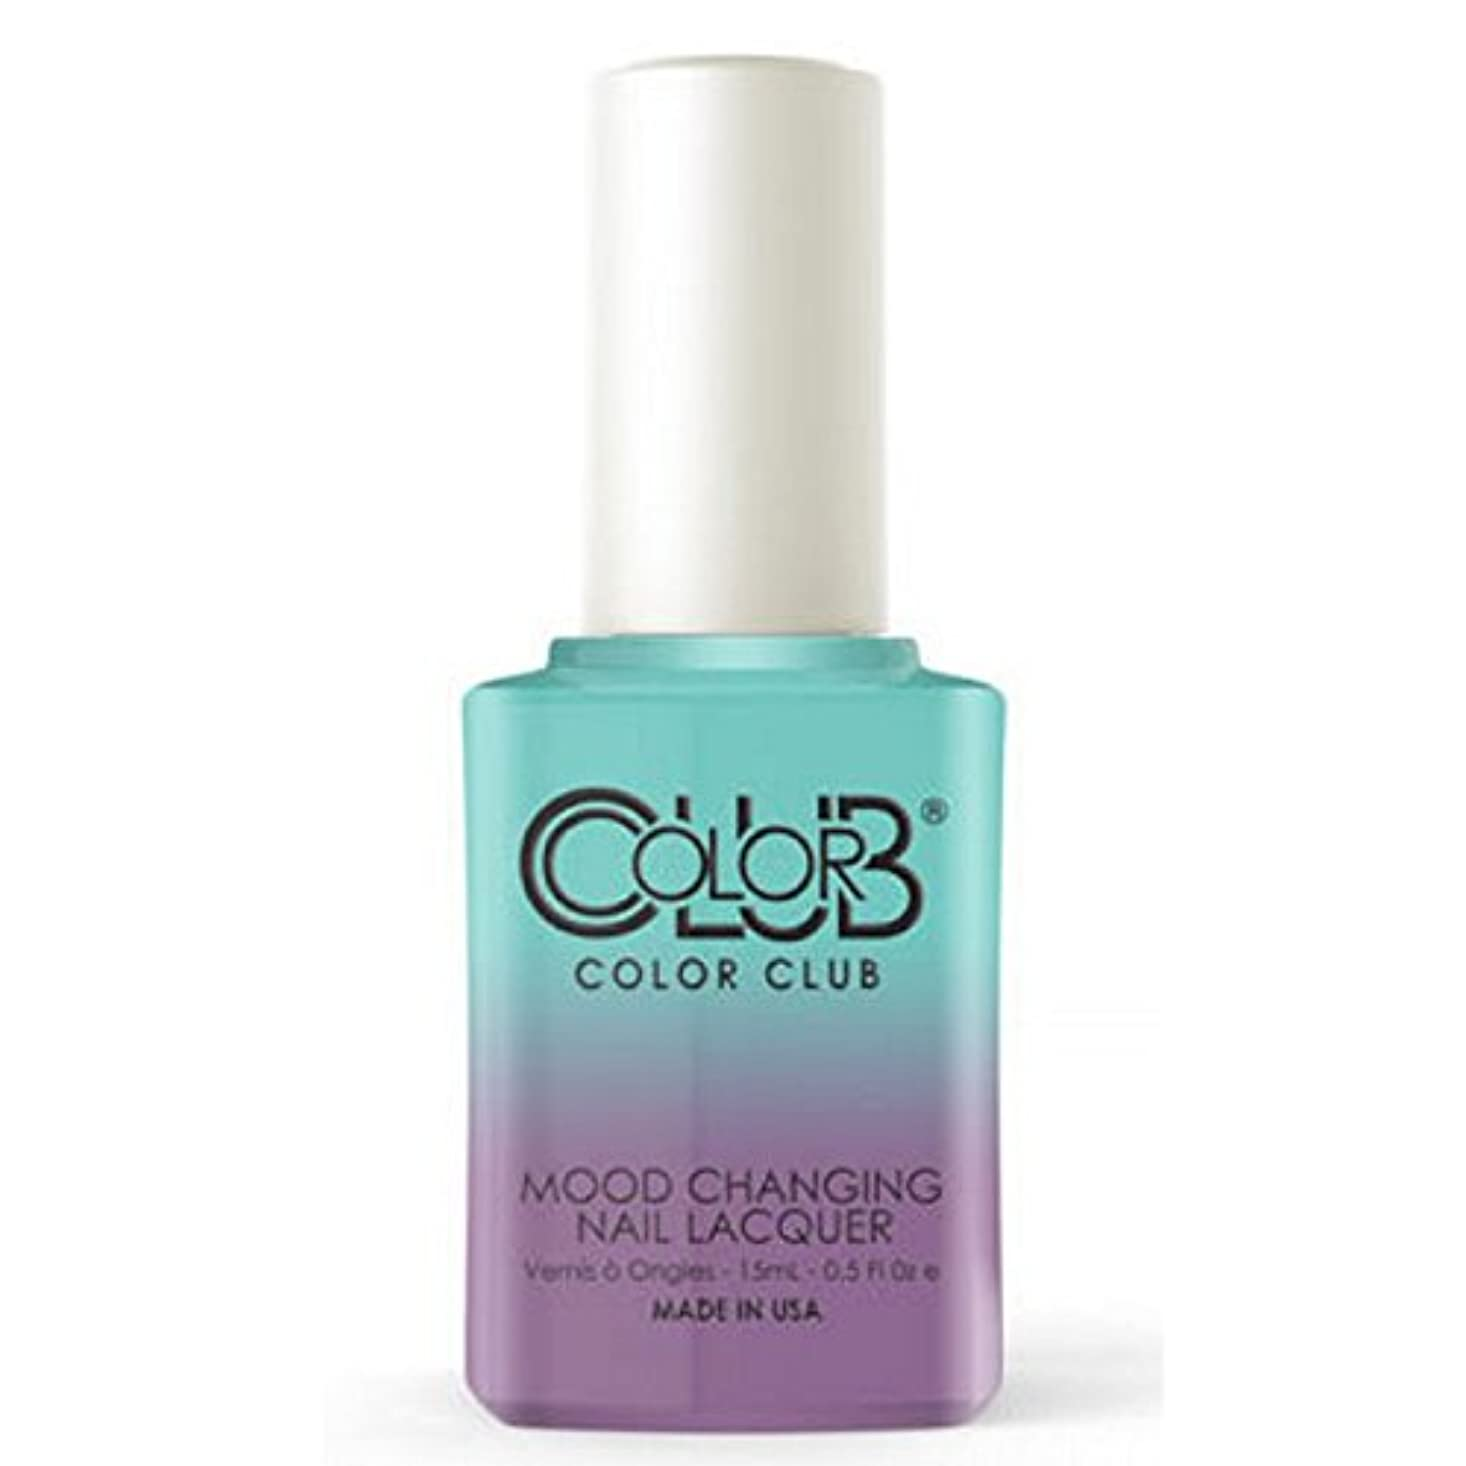 困難レンダリングマダムColor Club Mood Changing Nail Lacquer - Serene Green - 15 mL / 0.5 fl oz